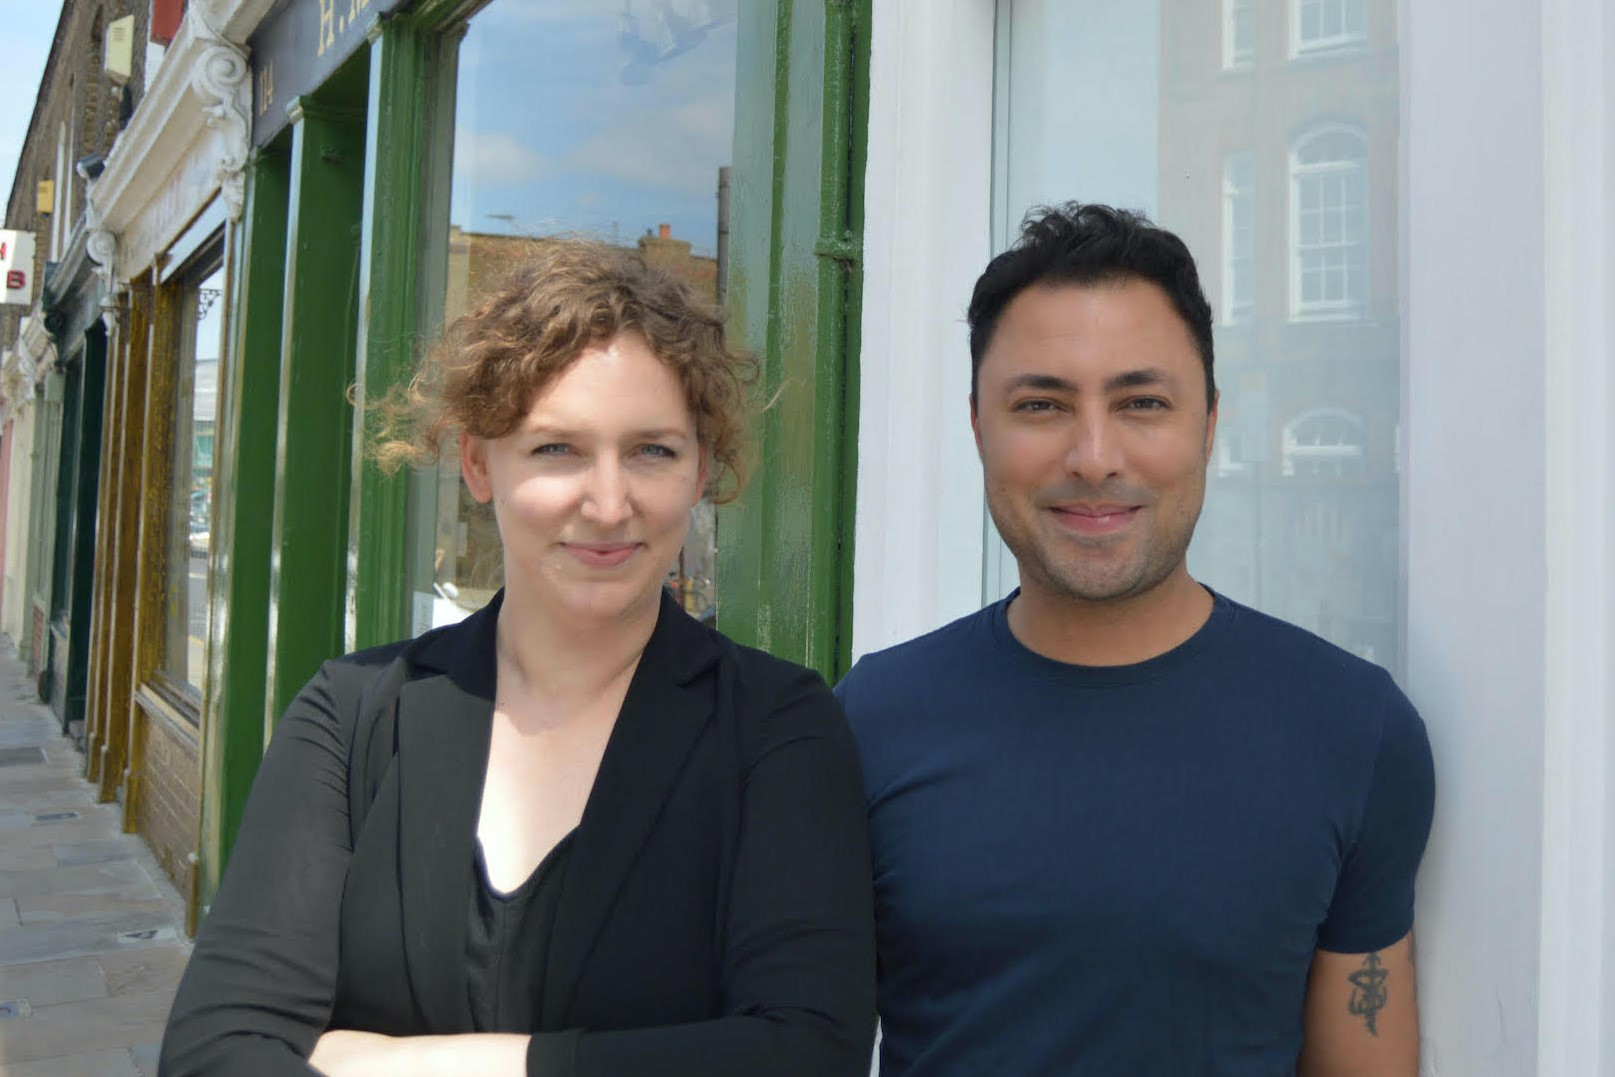 London-based wholesale marketplace Creoate nabs €4.2 million to support independent retailers